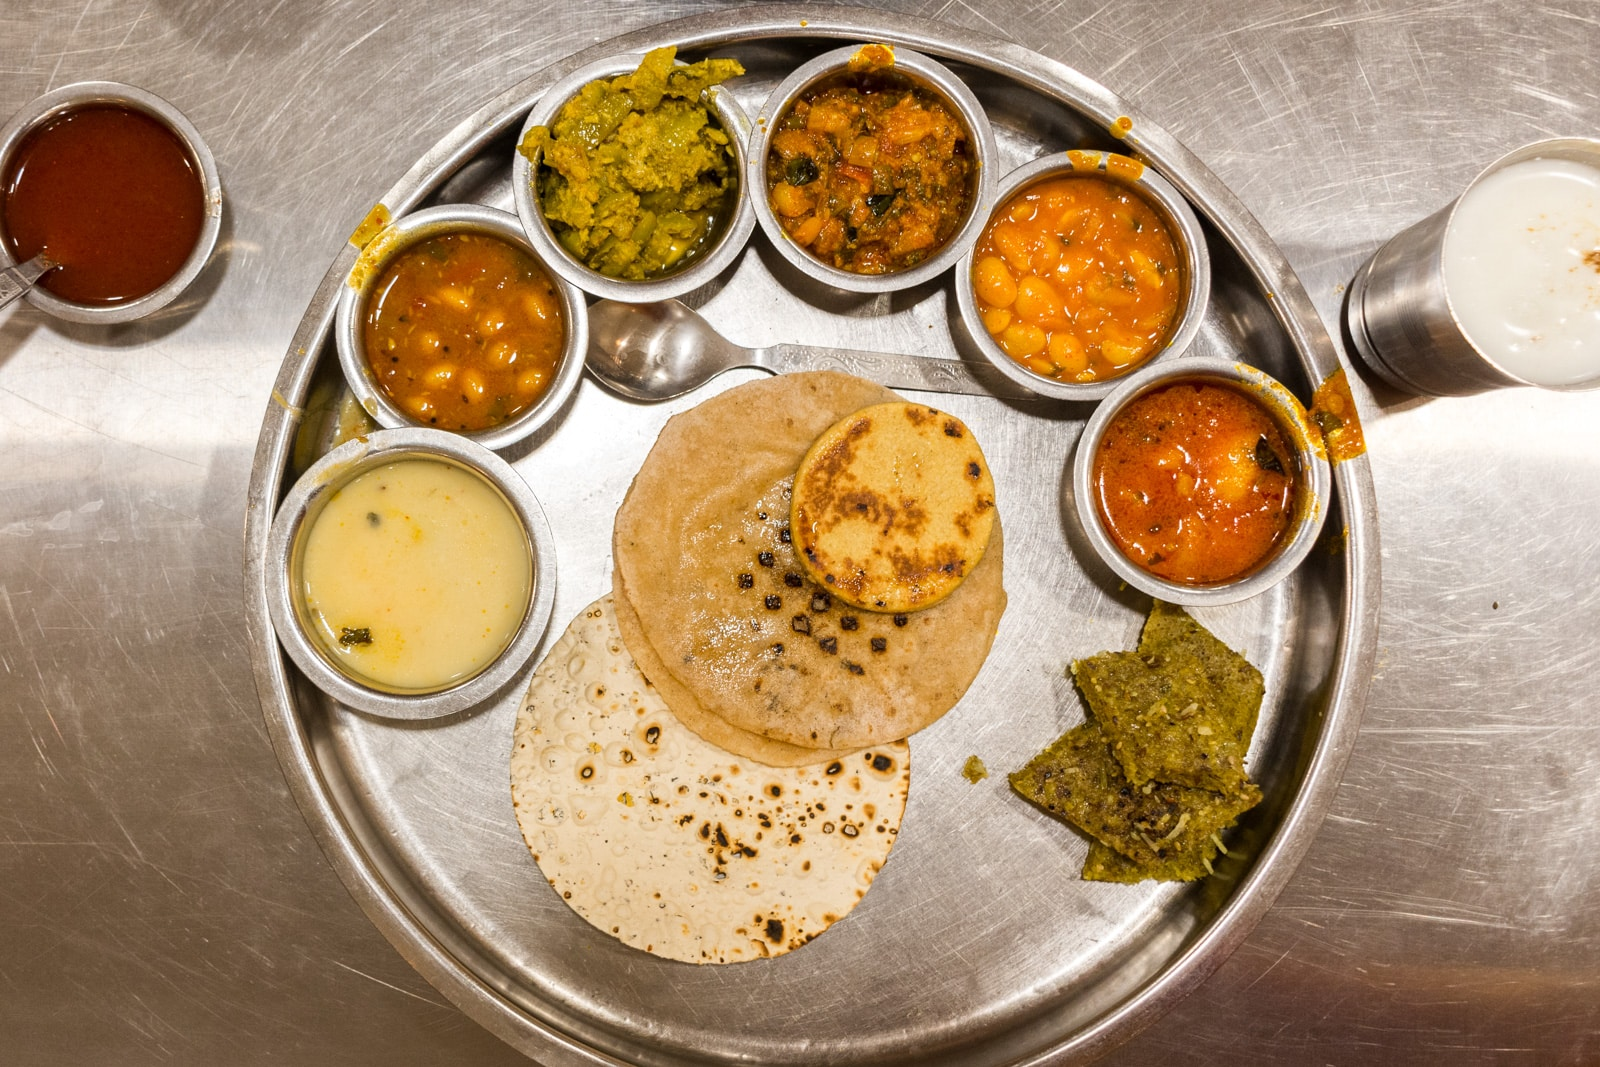 Weekend guide to Ahmedabad, Gujarat, India - Gujarati thali from Gopi Dining Hall - Lost With Purpose travel blog